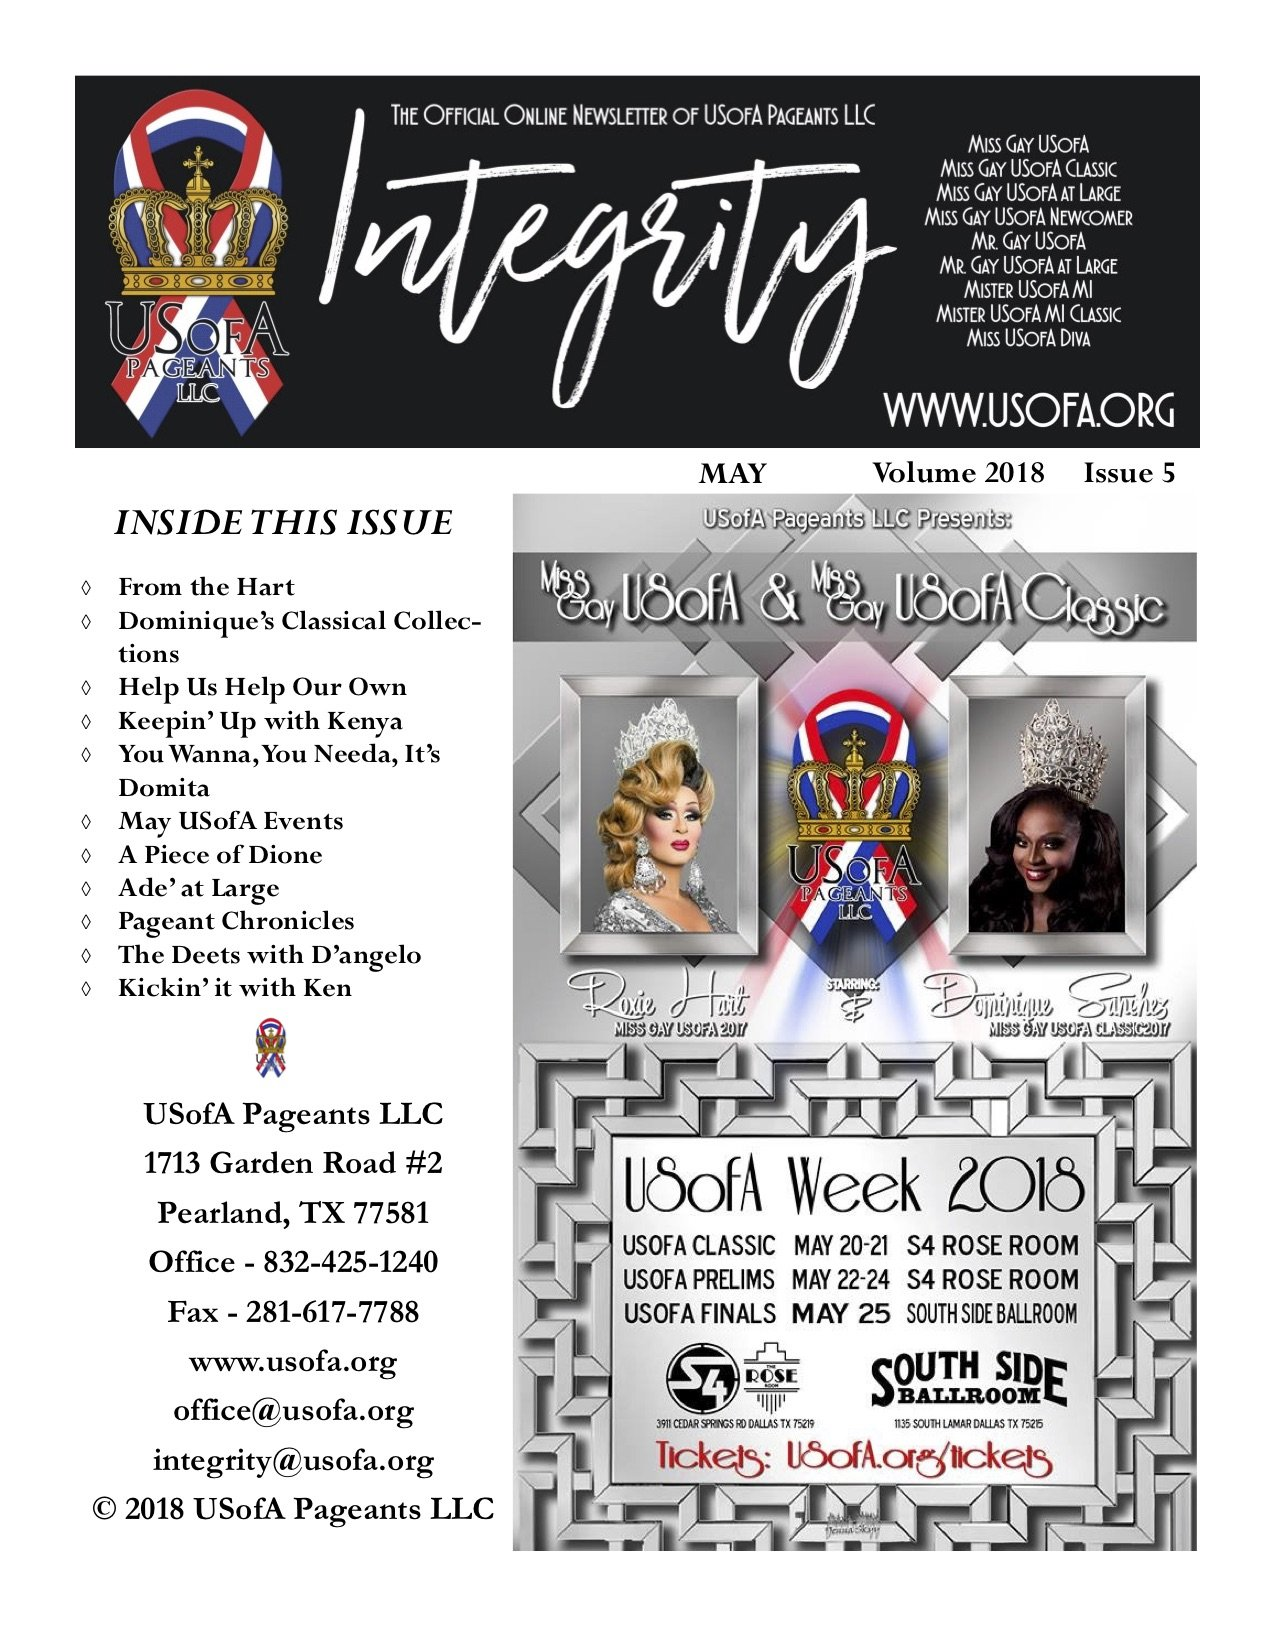 USofA Pageants Integrity Newsletter May 2018